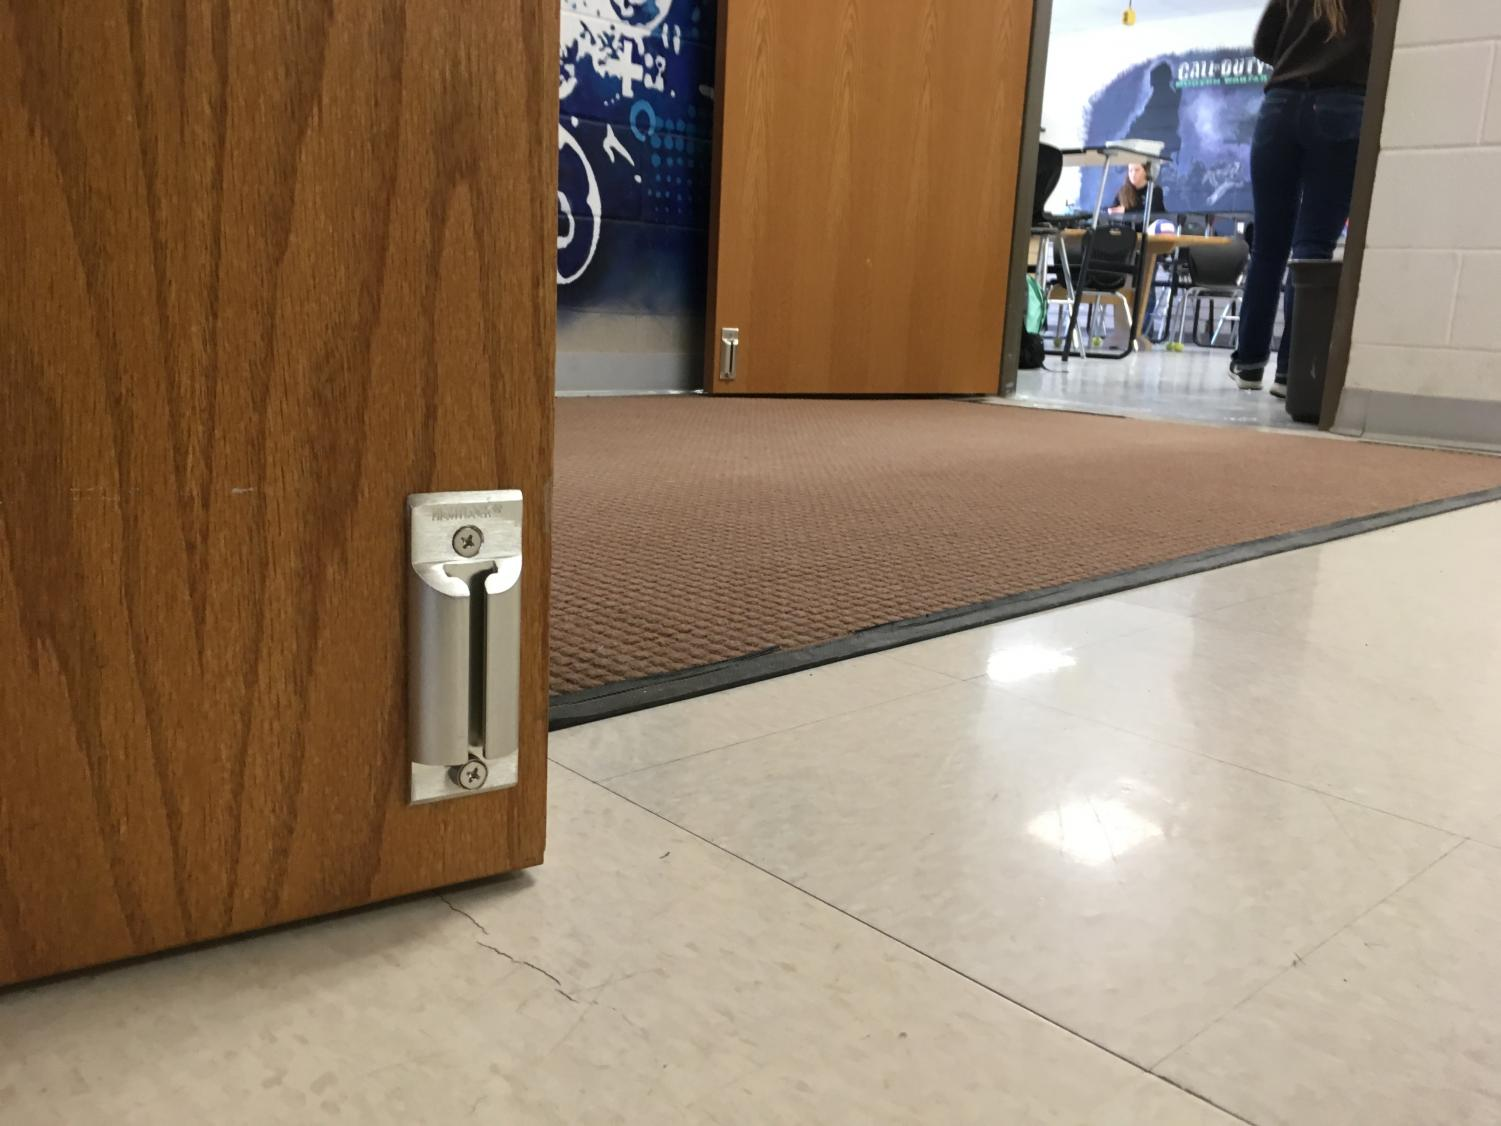 Mr. Vin Cappiello's classroom door, along with all of the doors at the Powell High School, now have a door stopper, a new lockdown feature.